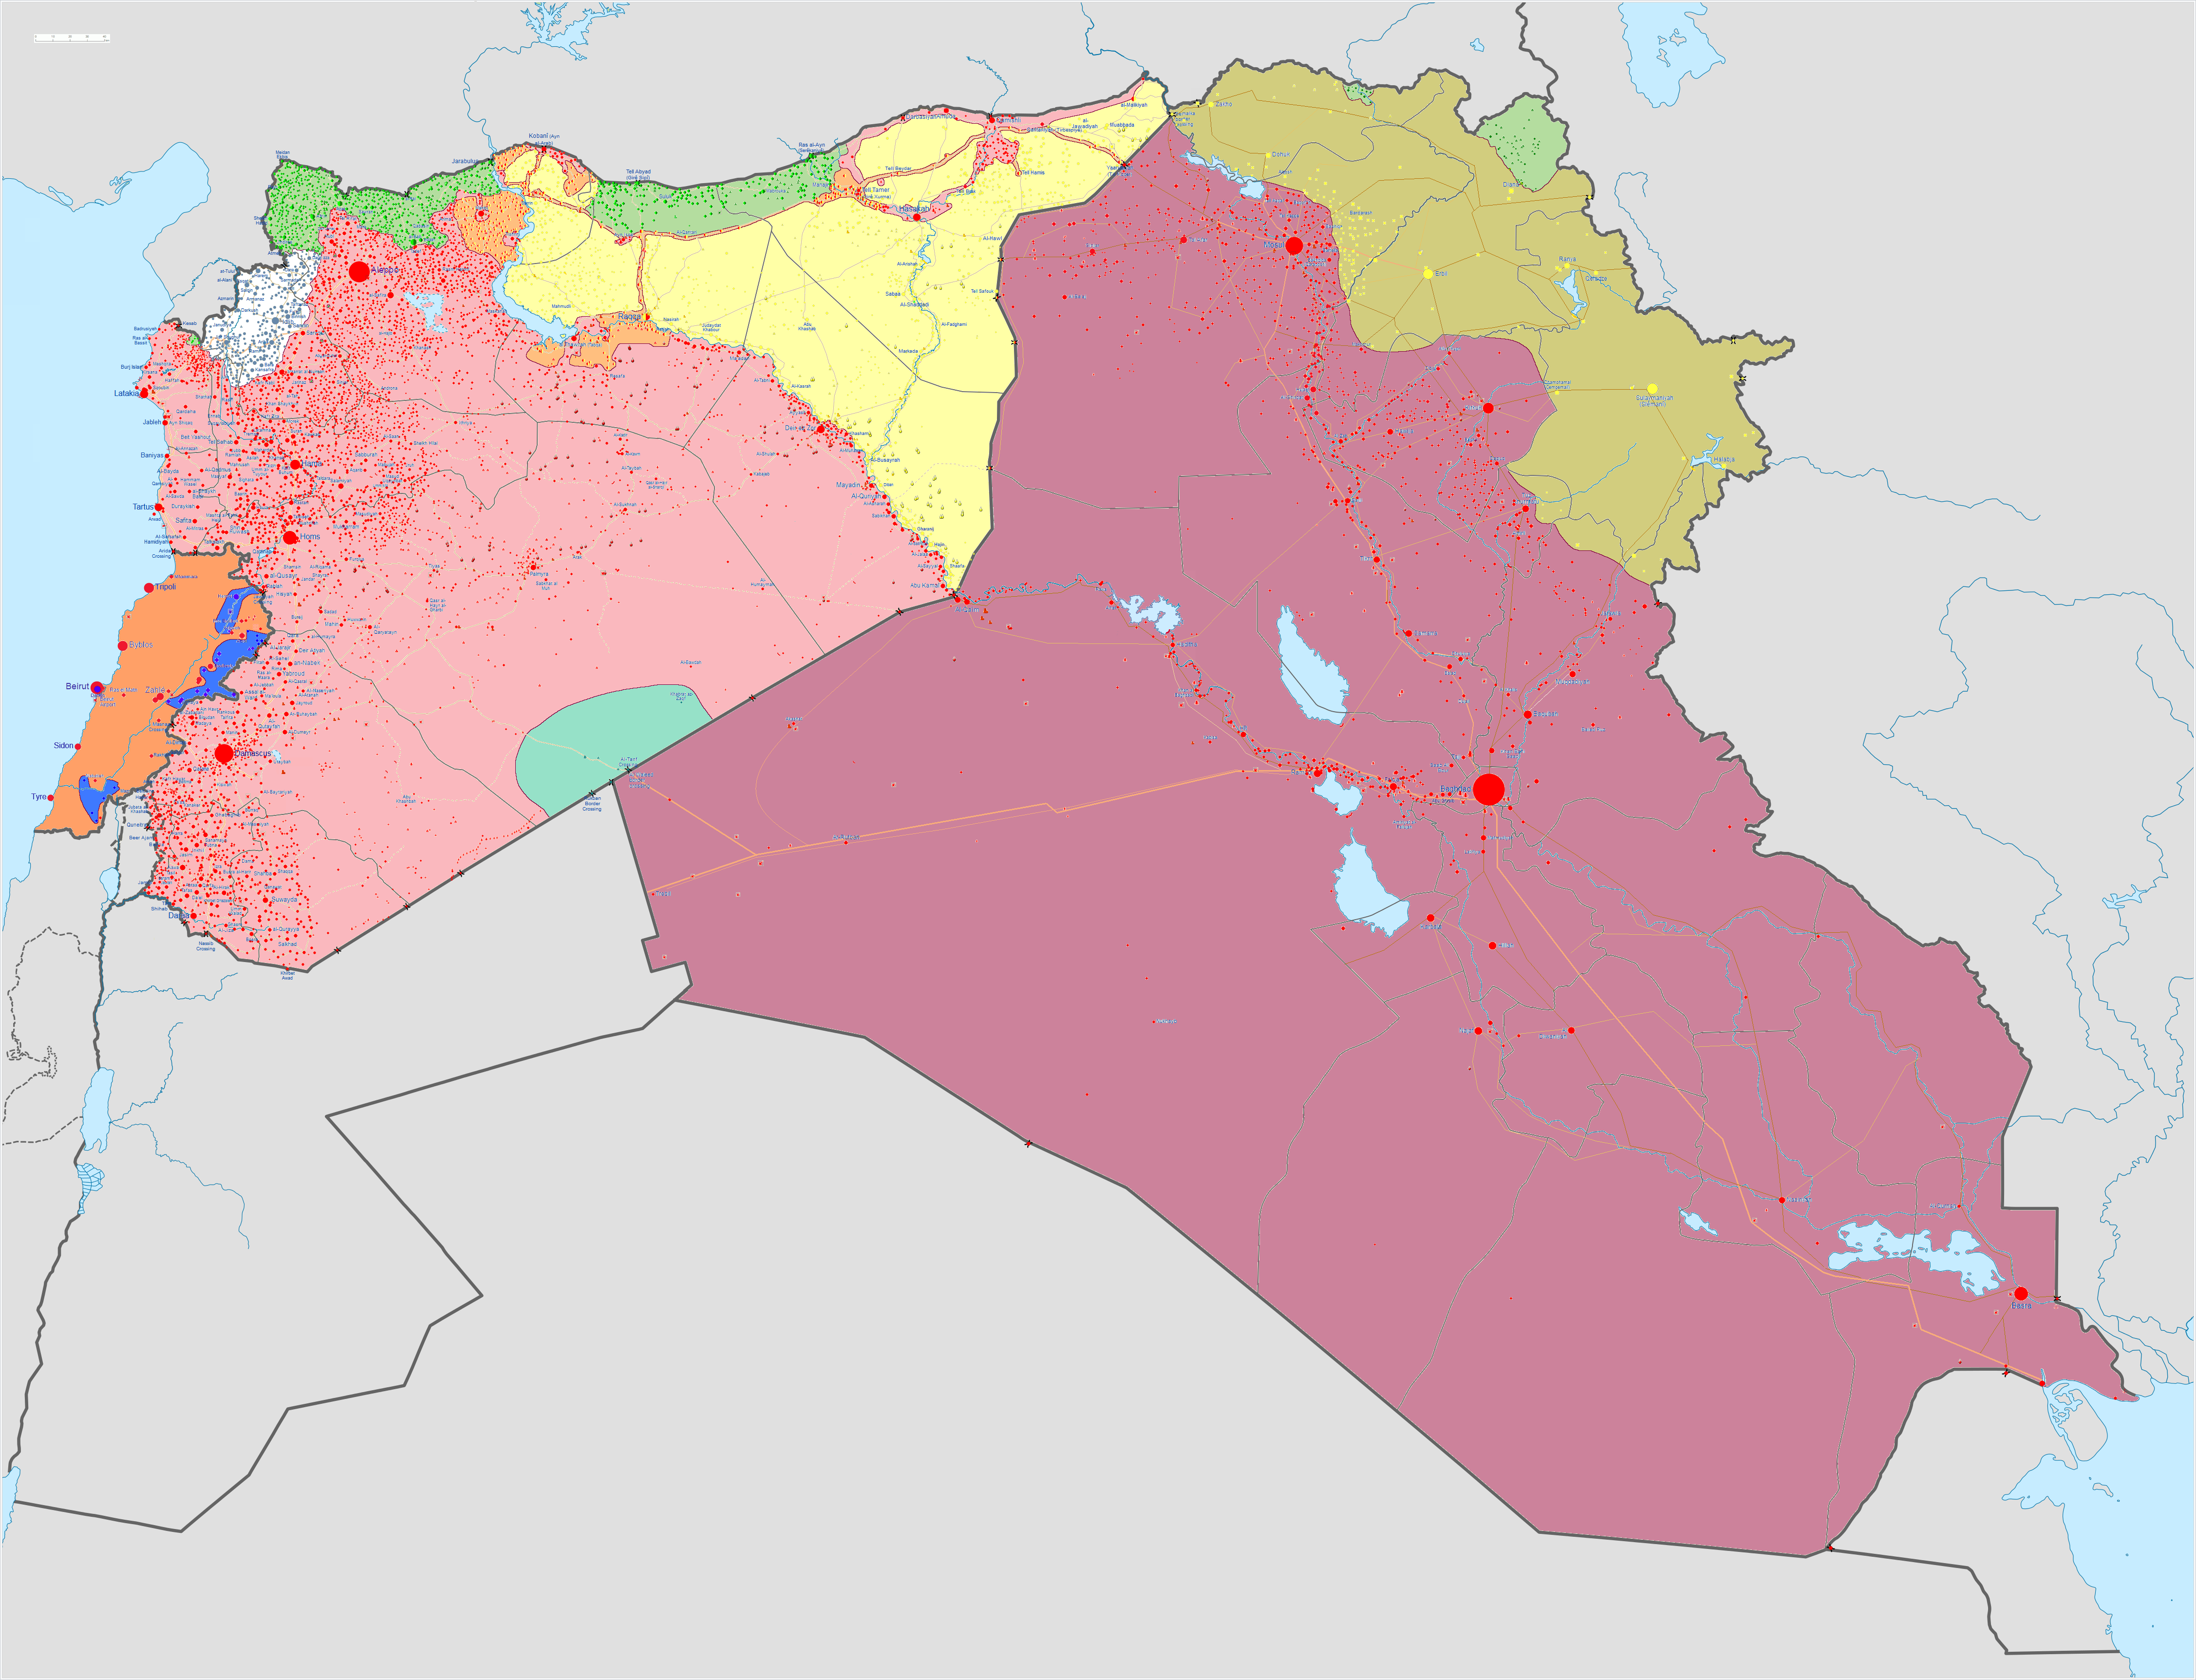 Map of Syria, Iraq, Lebanon (August 1, 2015) : syriancivilwar